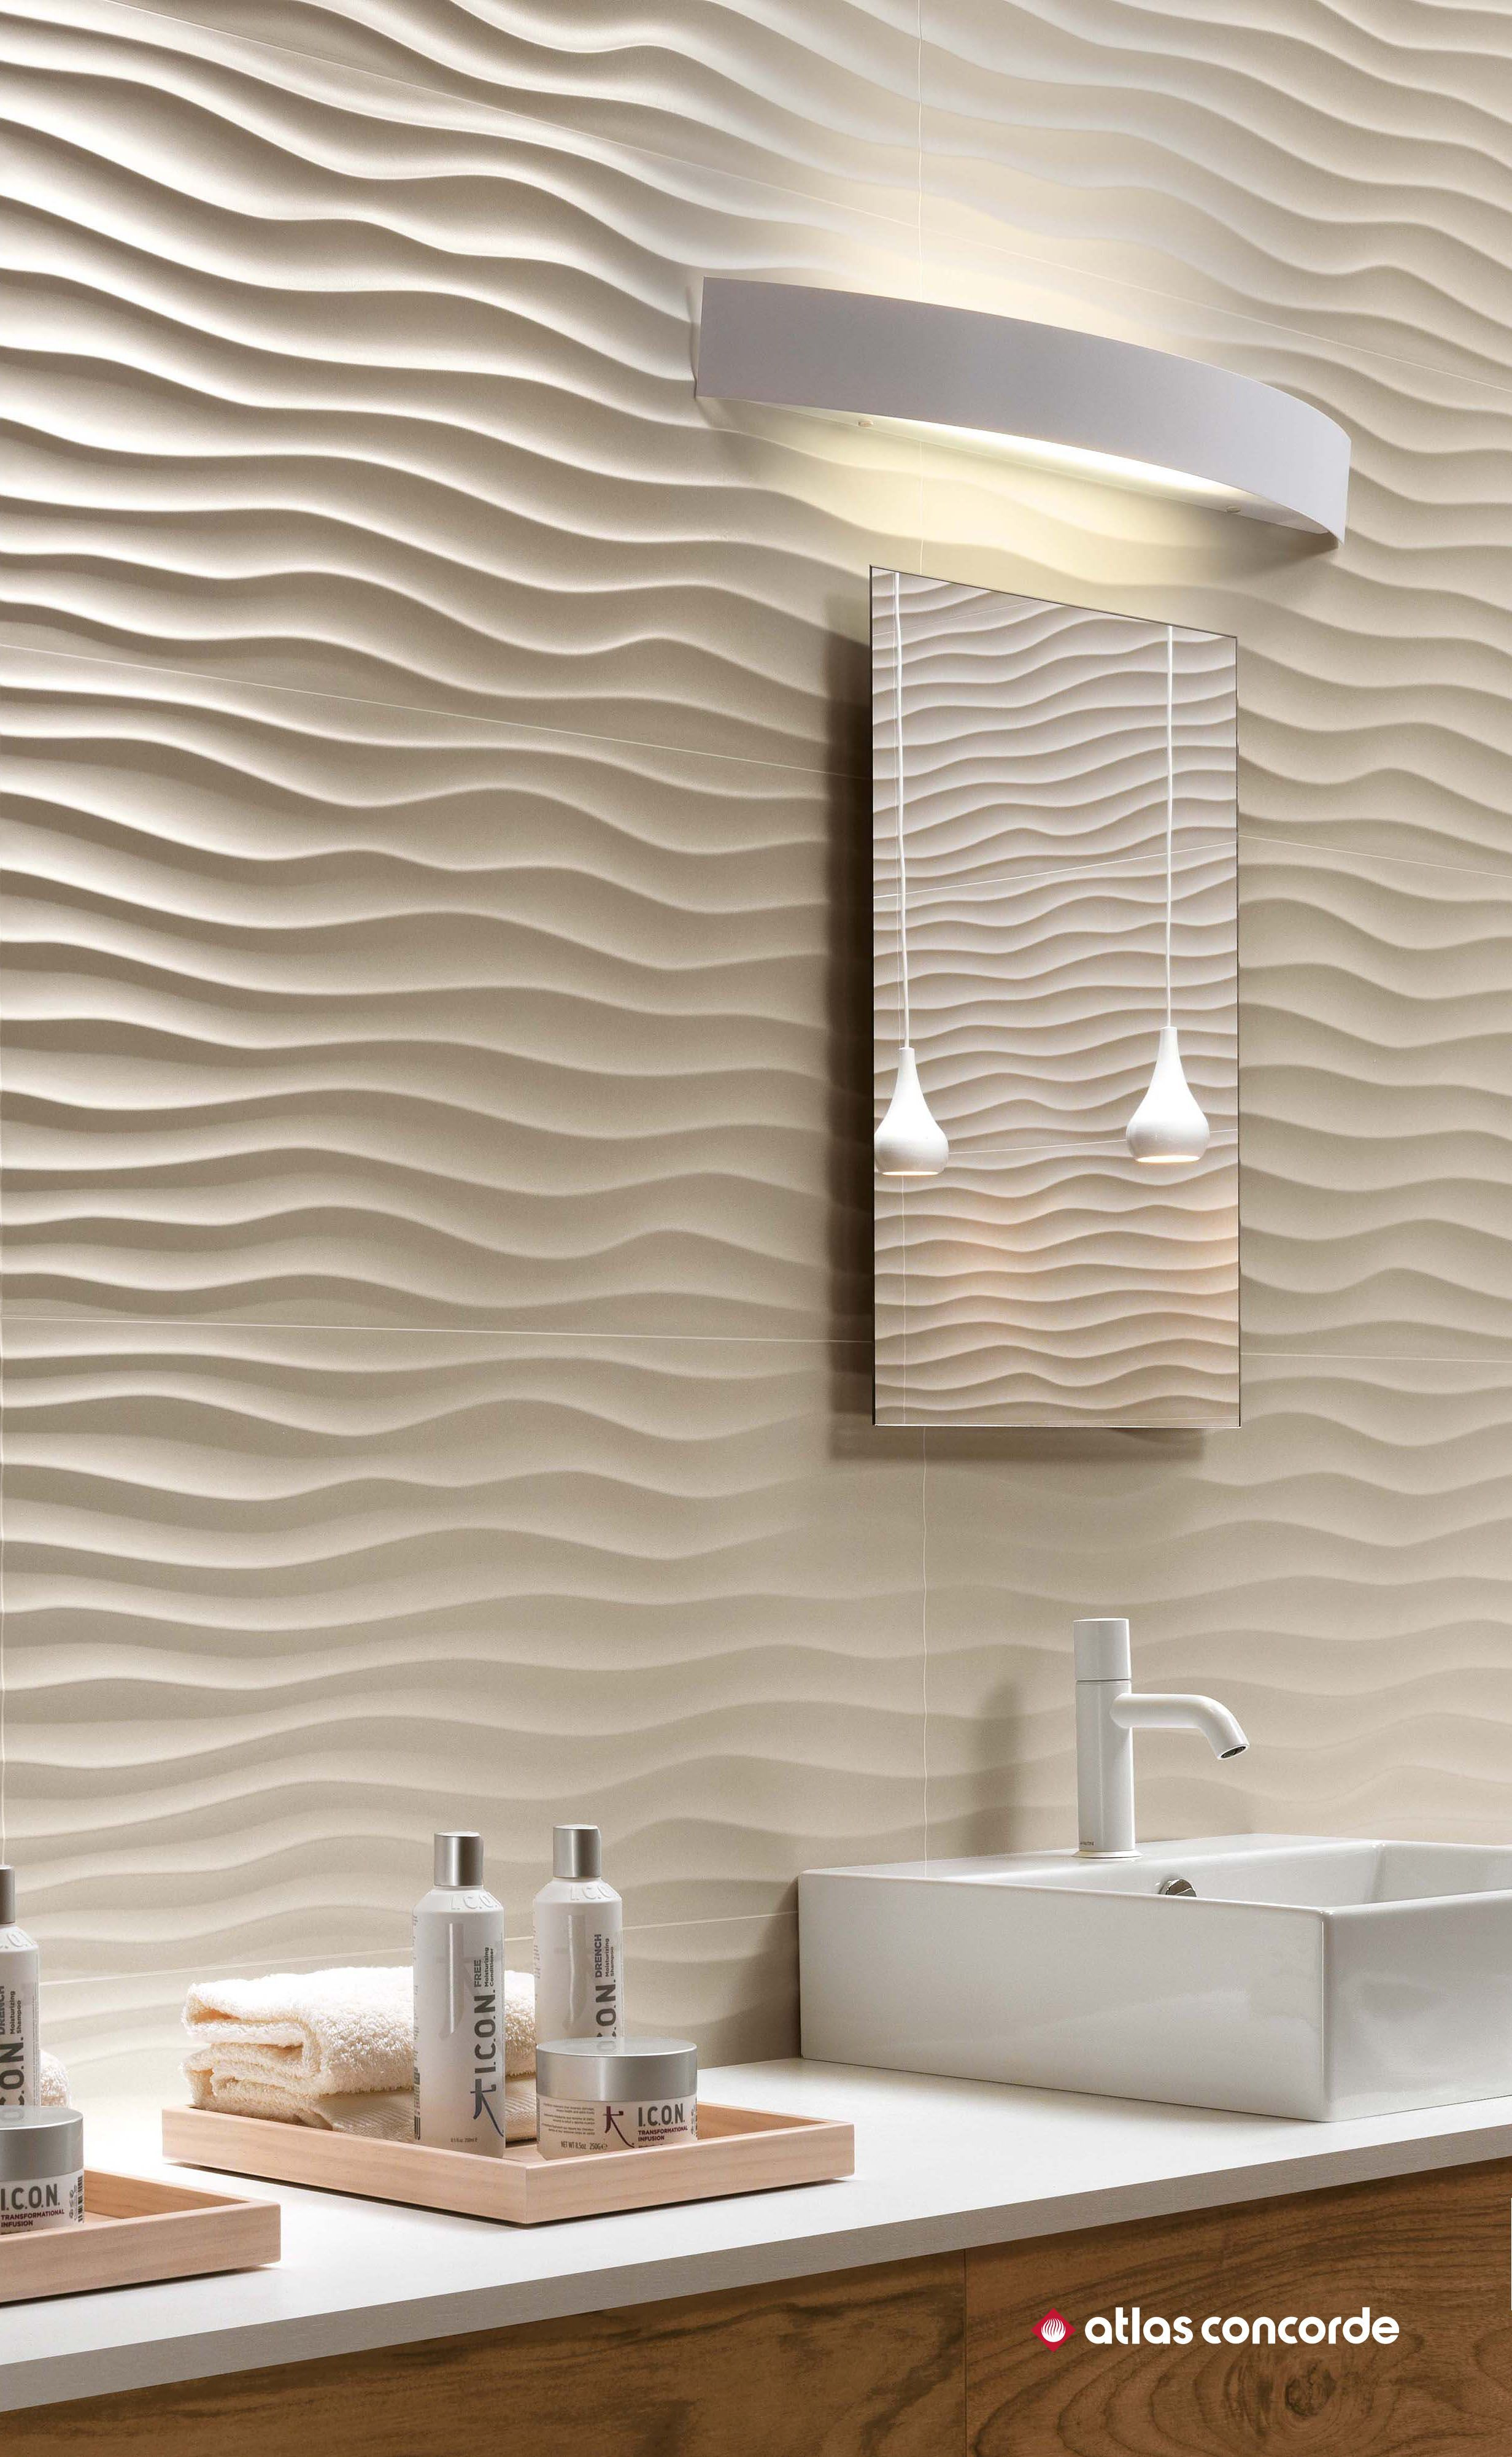 3d Wall Tiles For Bathrooms Kitchens Spas Tilebathtub